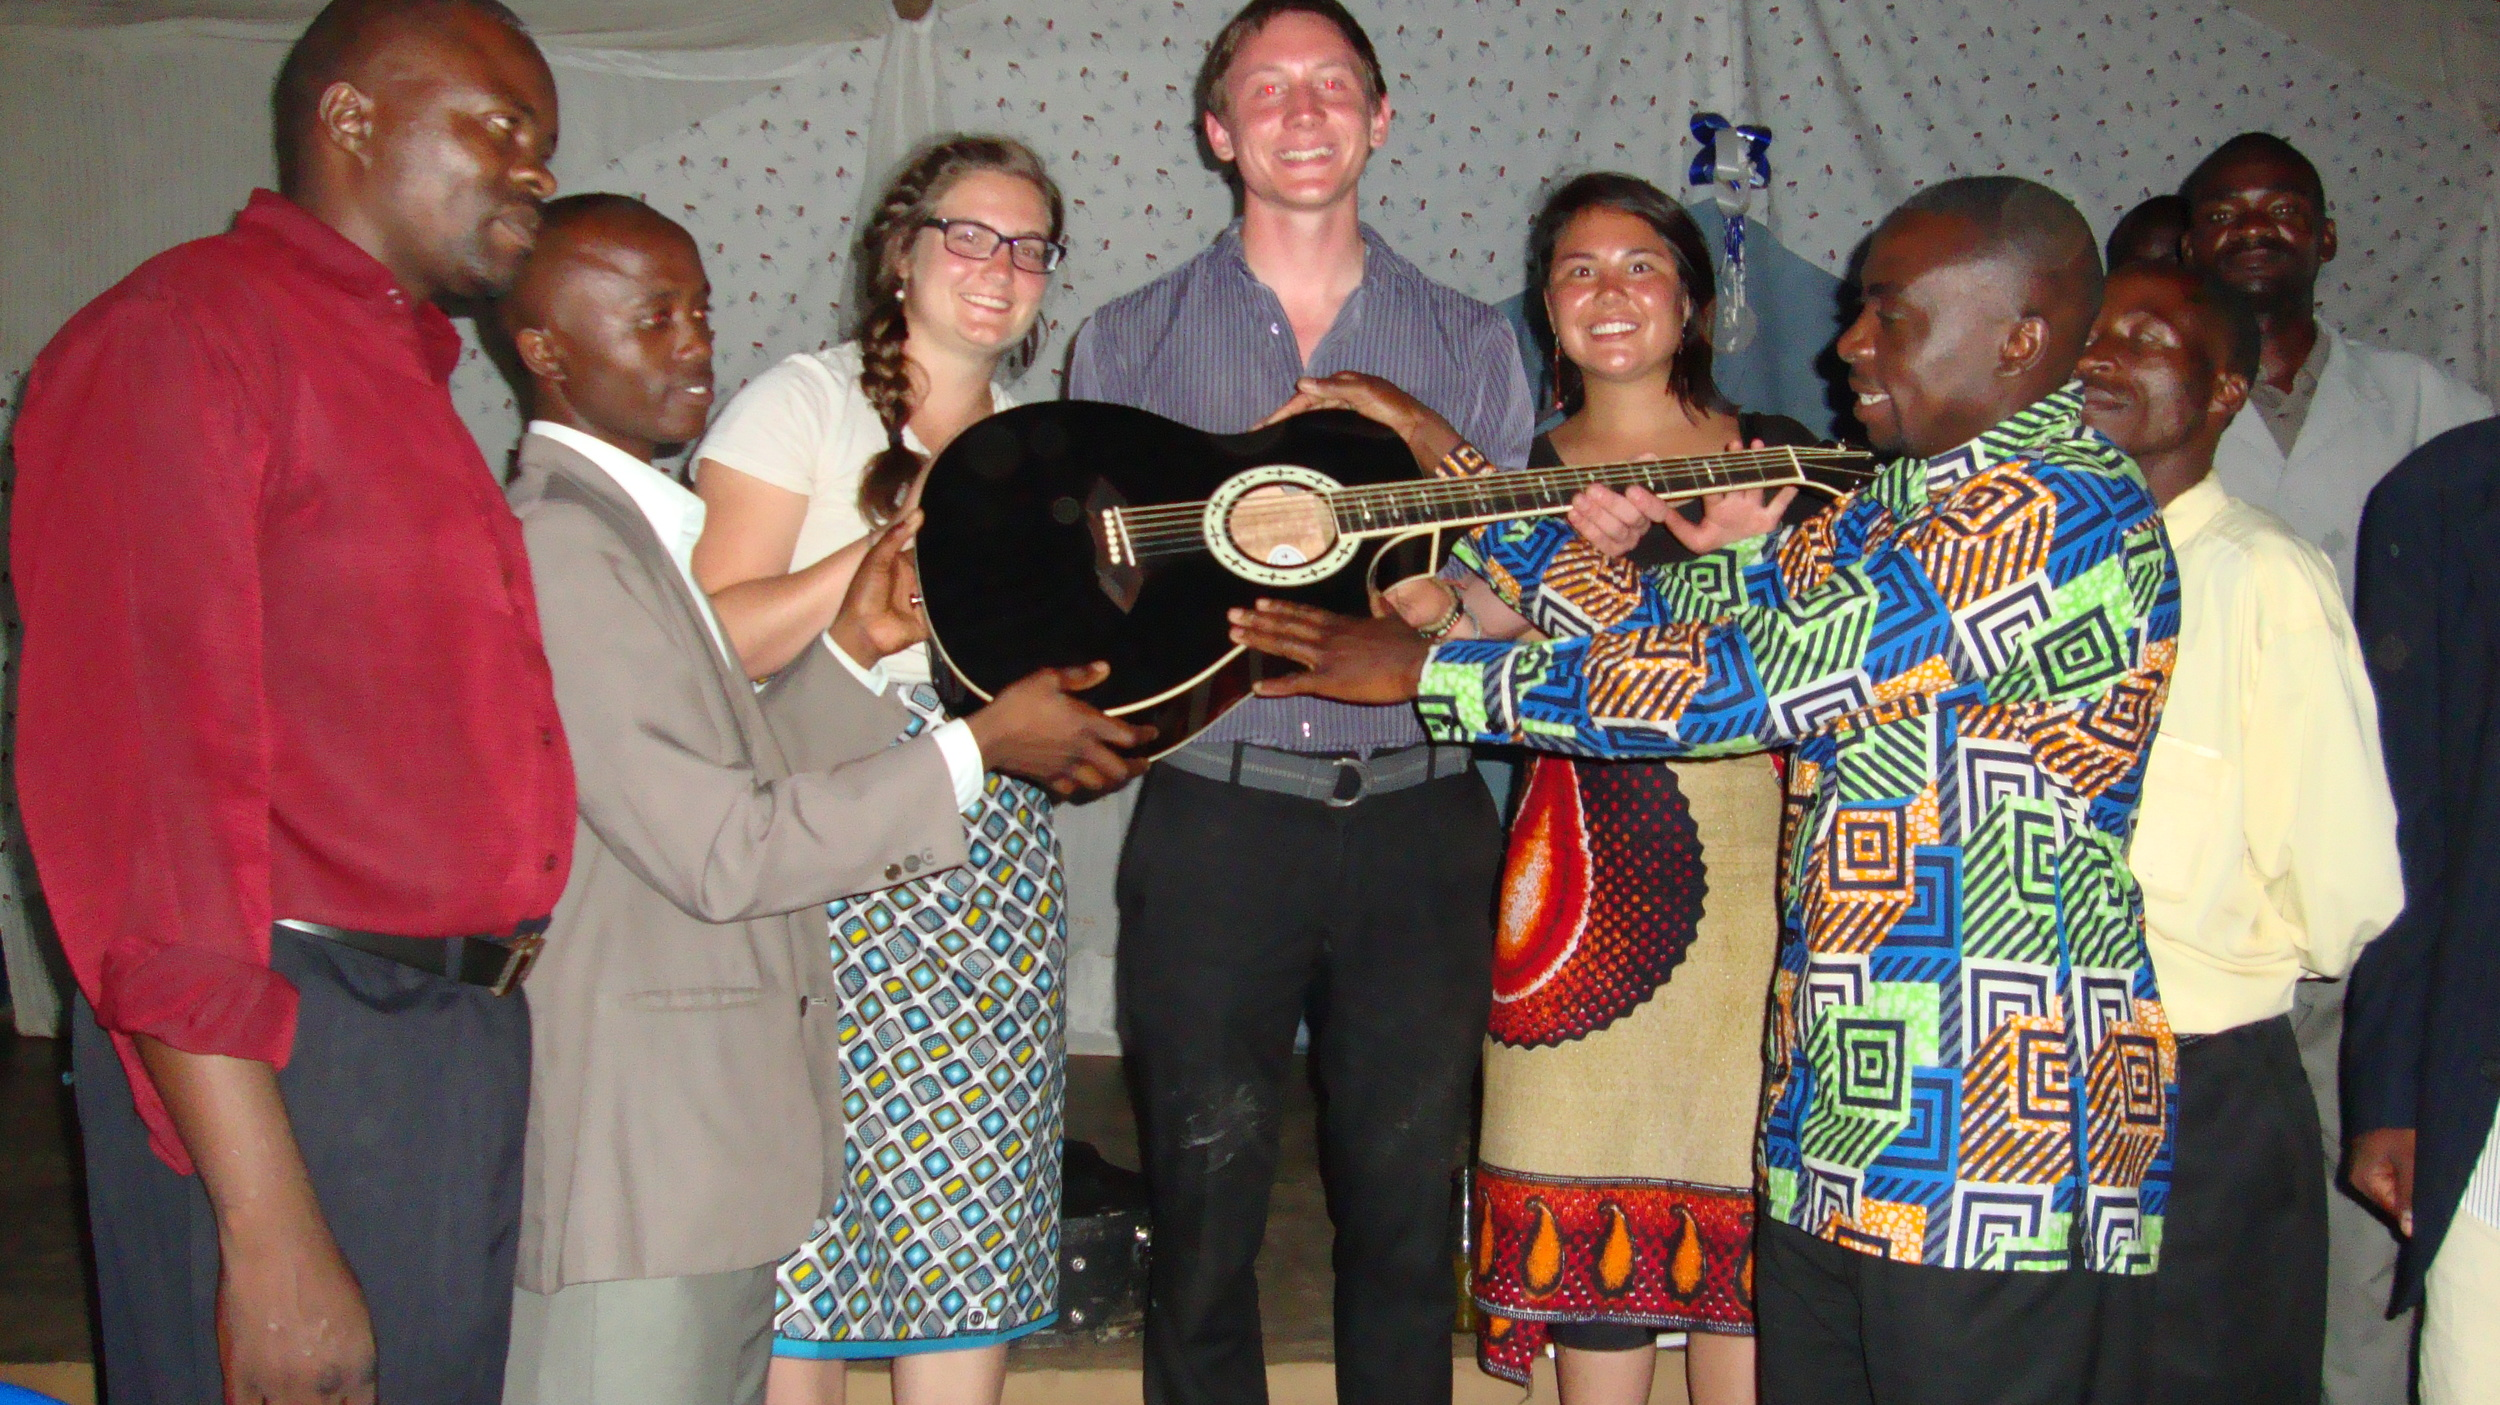 Proudly donating the guitar